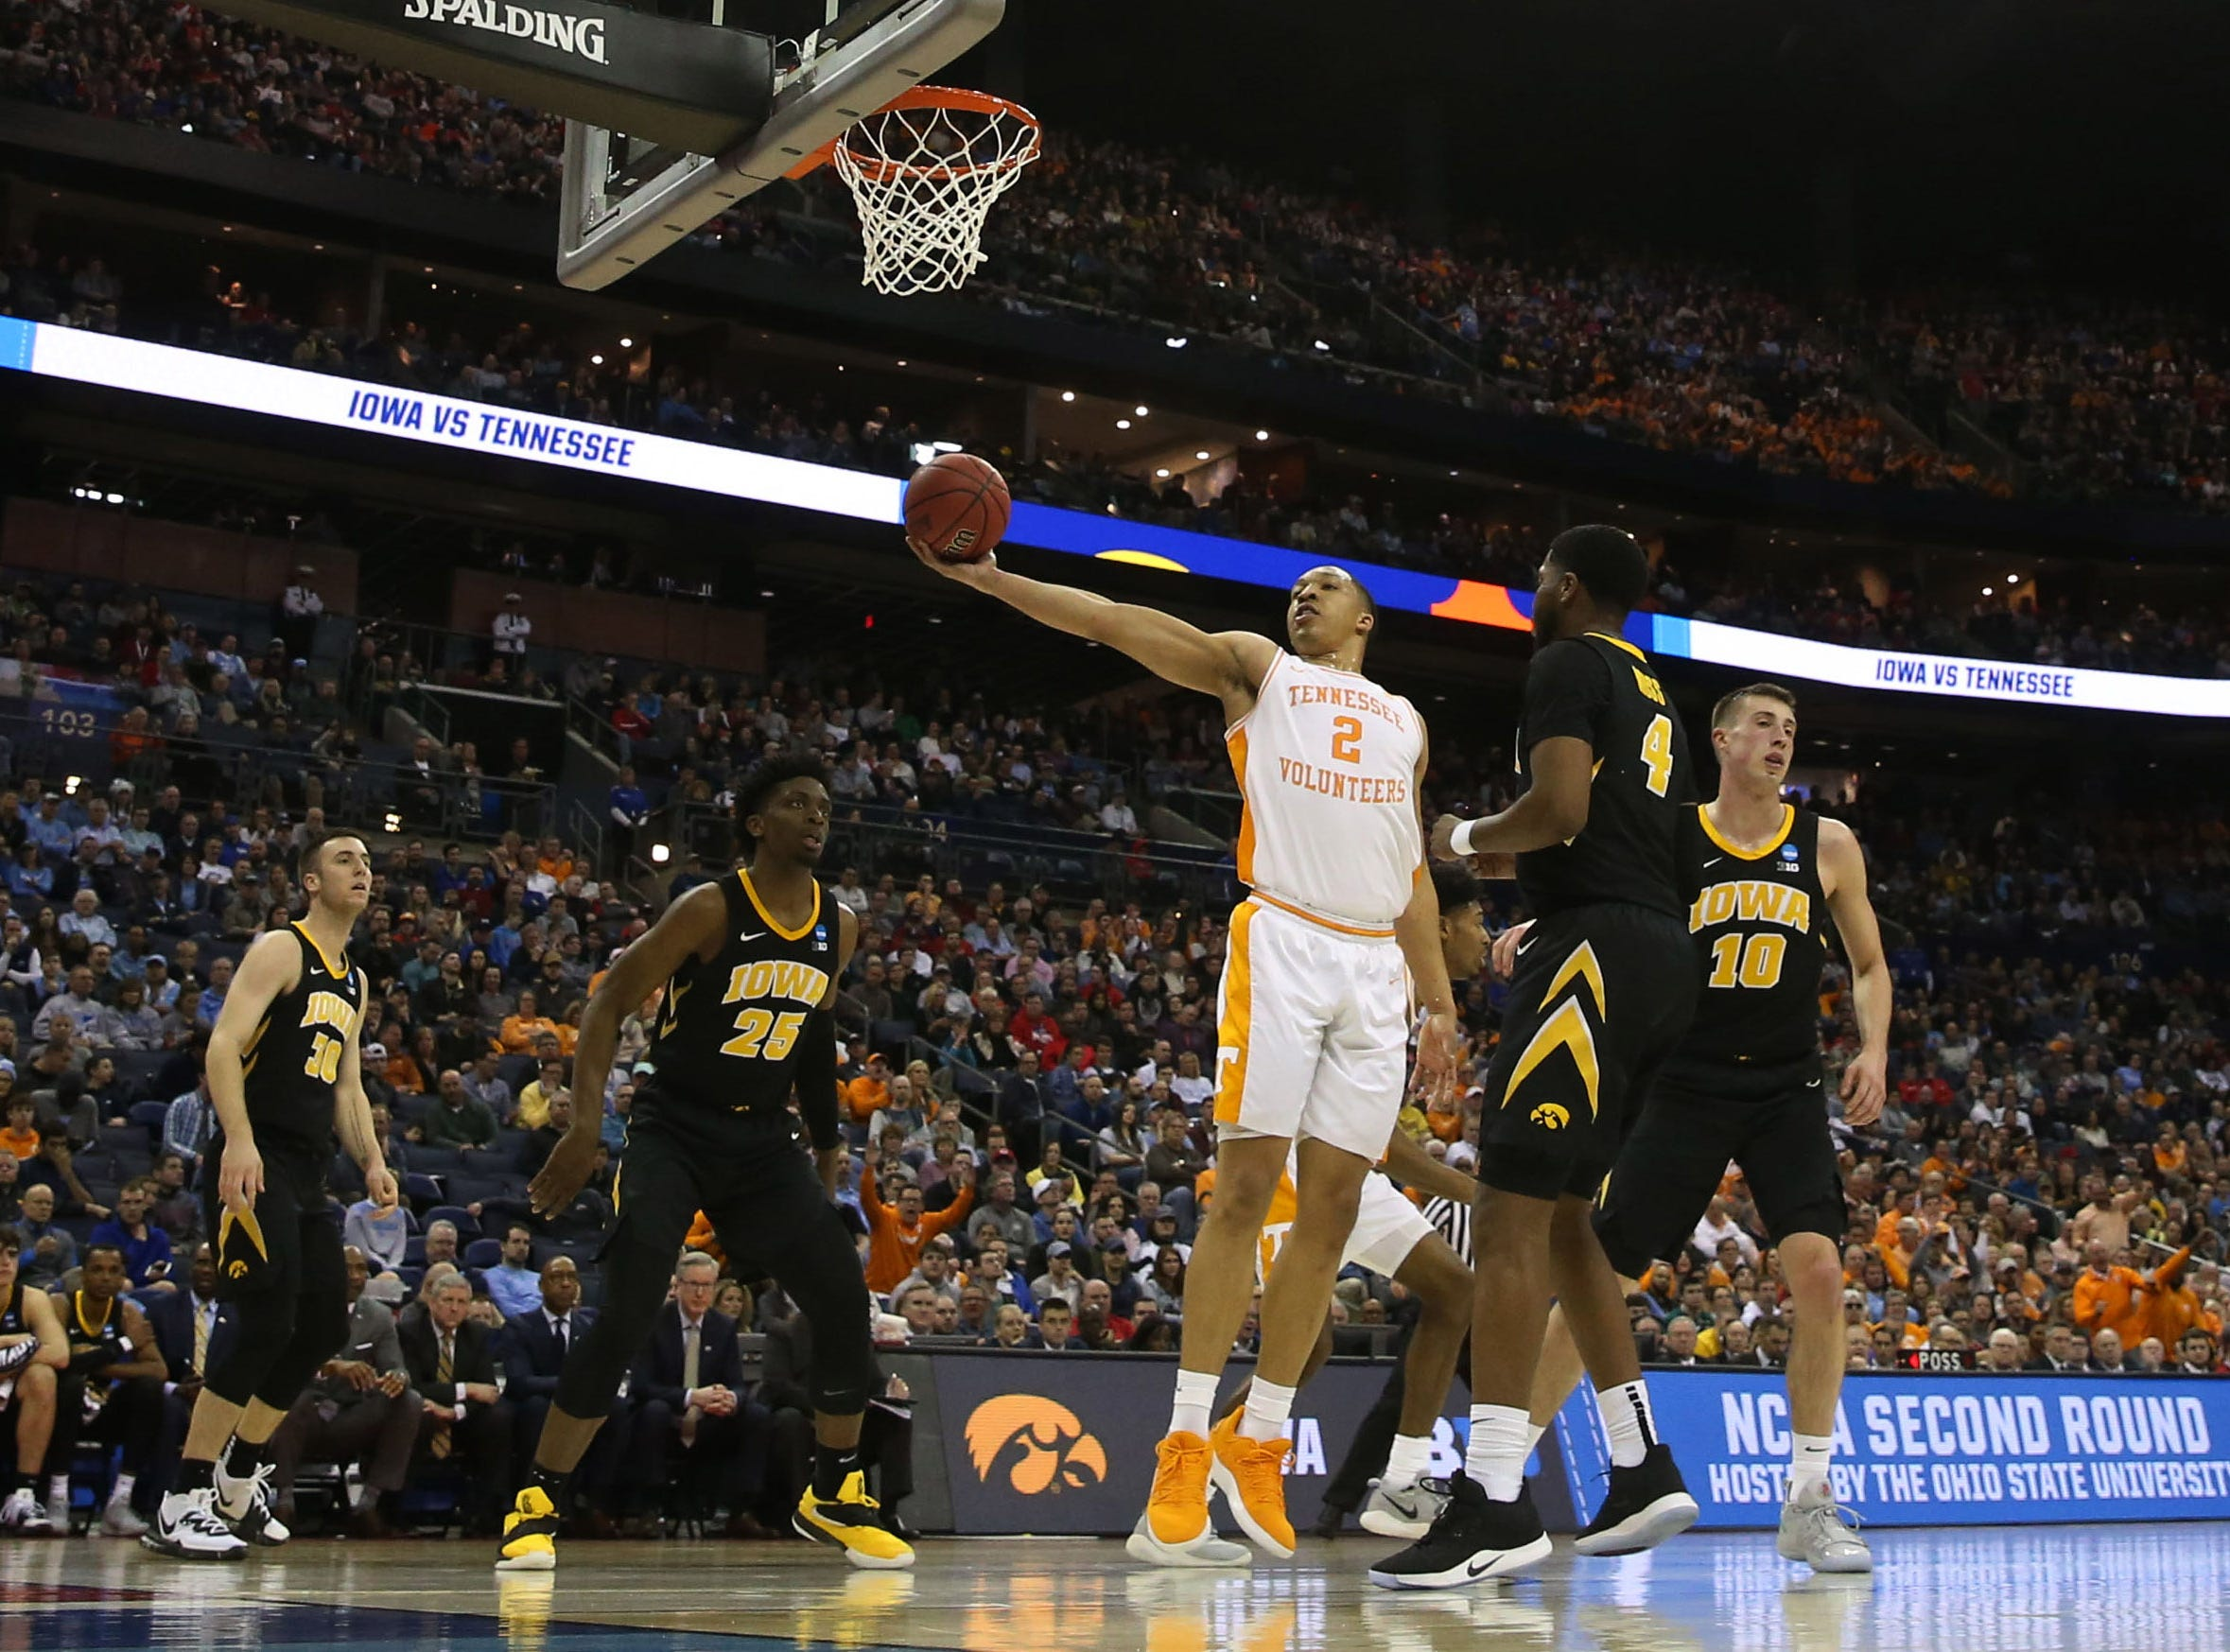 Tennessee Volunteers forward Grant Williams (2) goes to the basket in the first half against the Iowa Hawkeyes in the second round of the 2019 NCAA Tournament at Nationwide Arena.